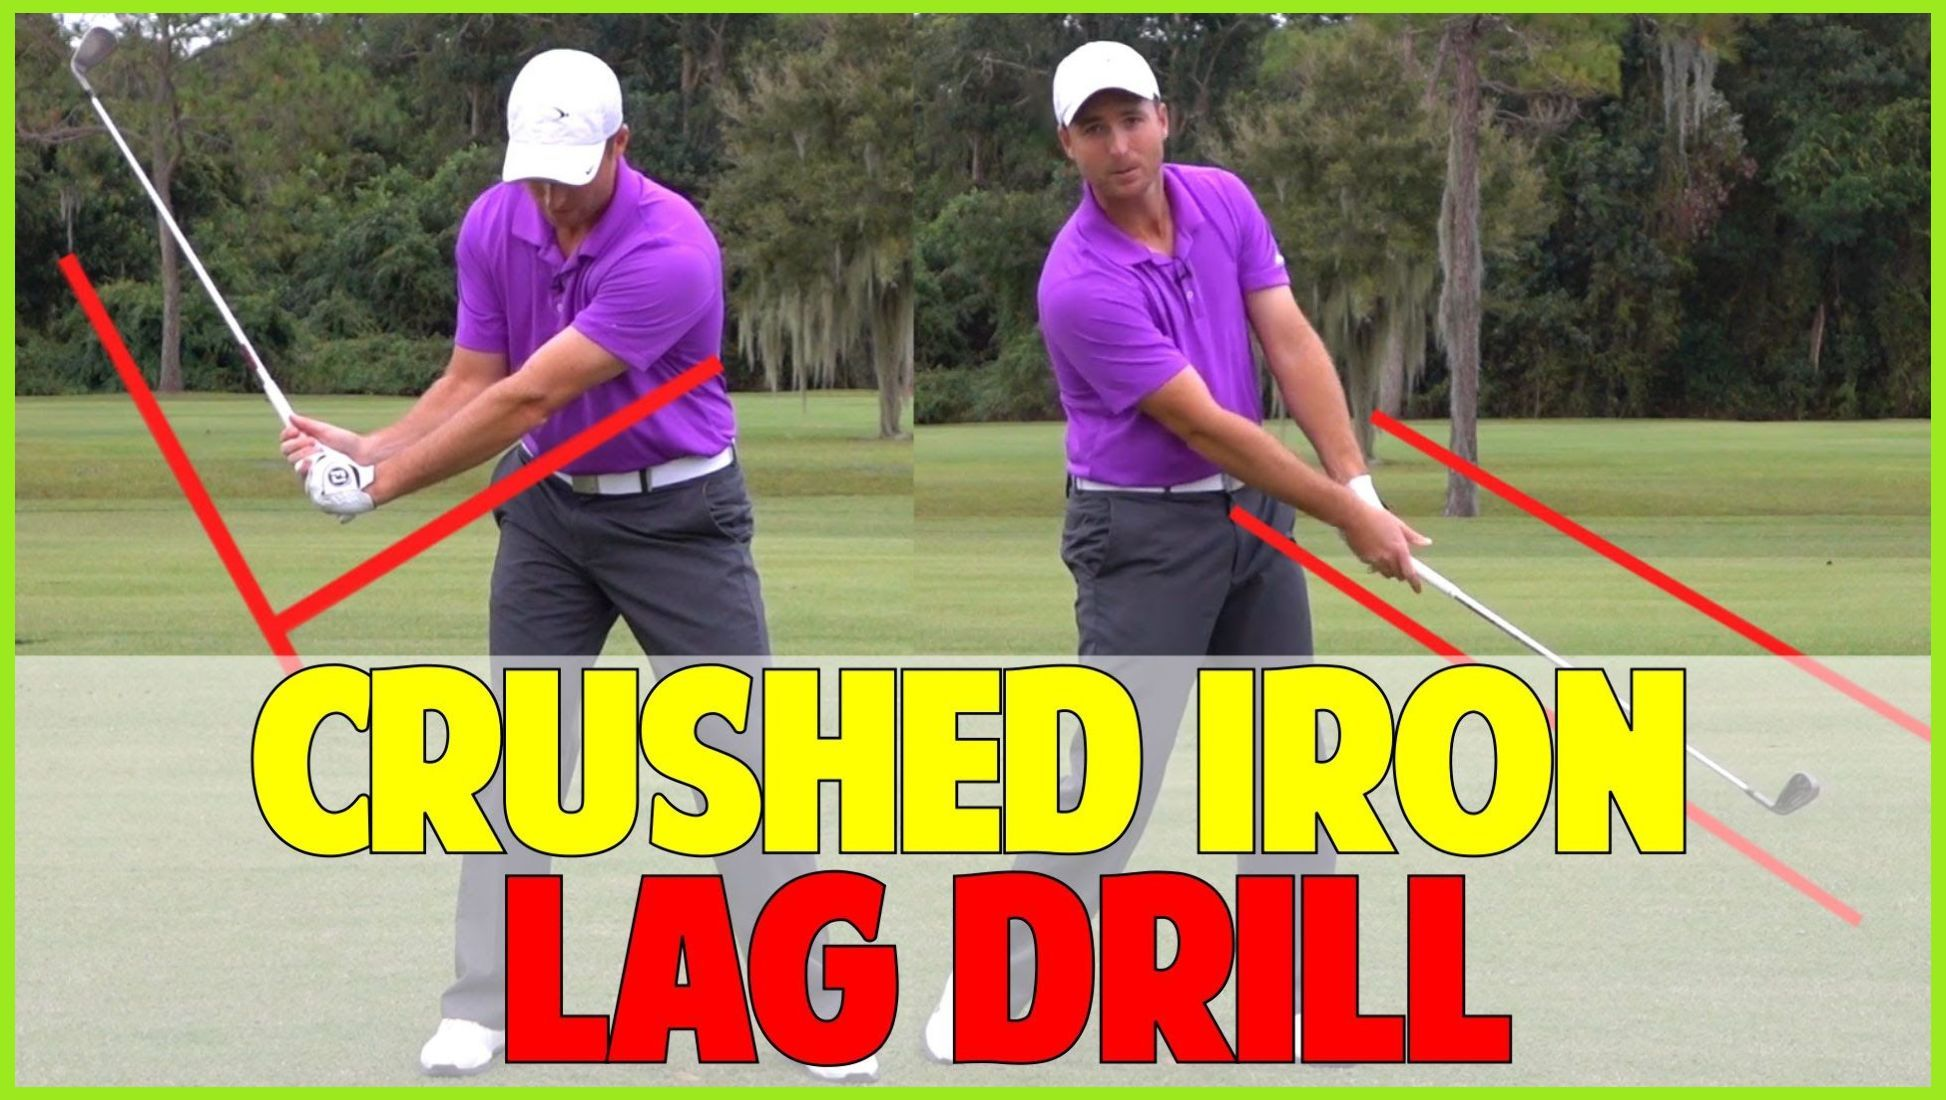 Golf lag drill to crush irons how to hit a driver